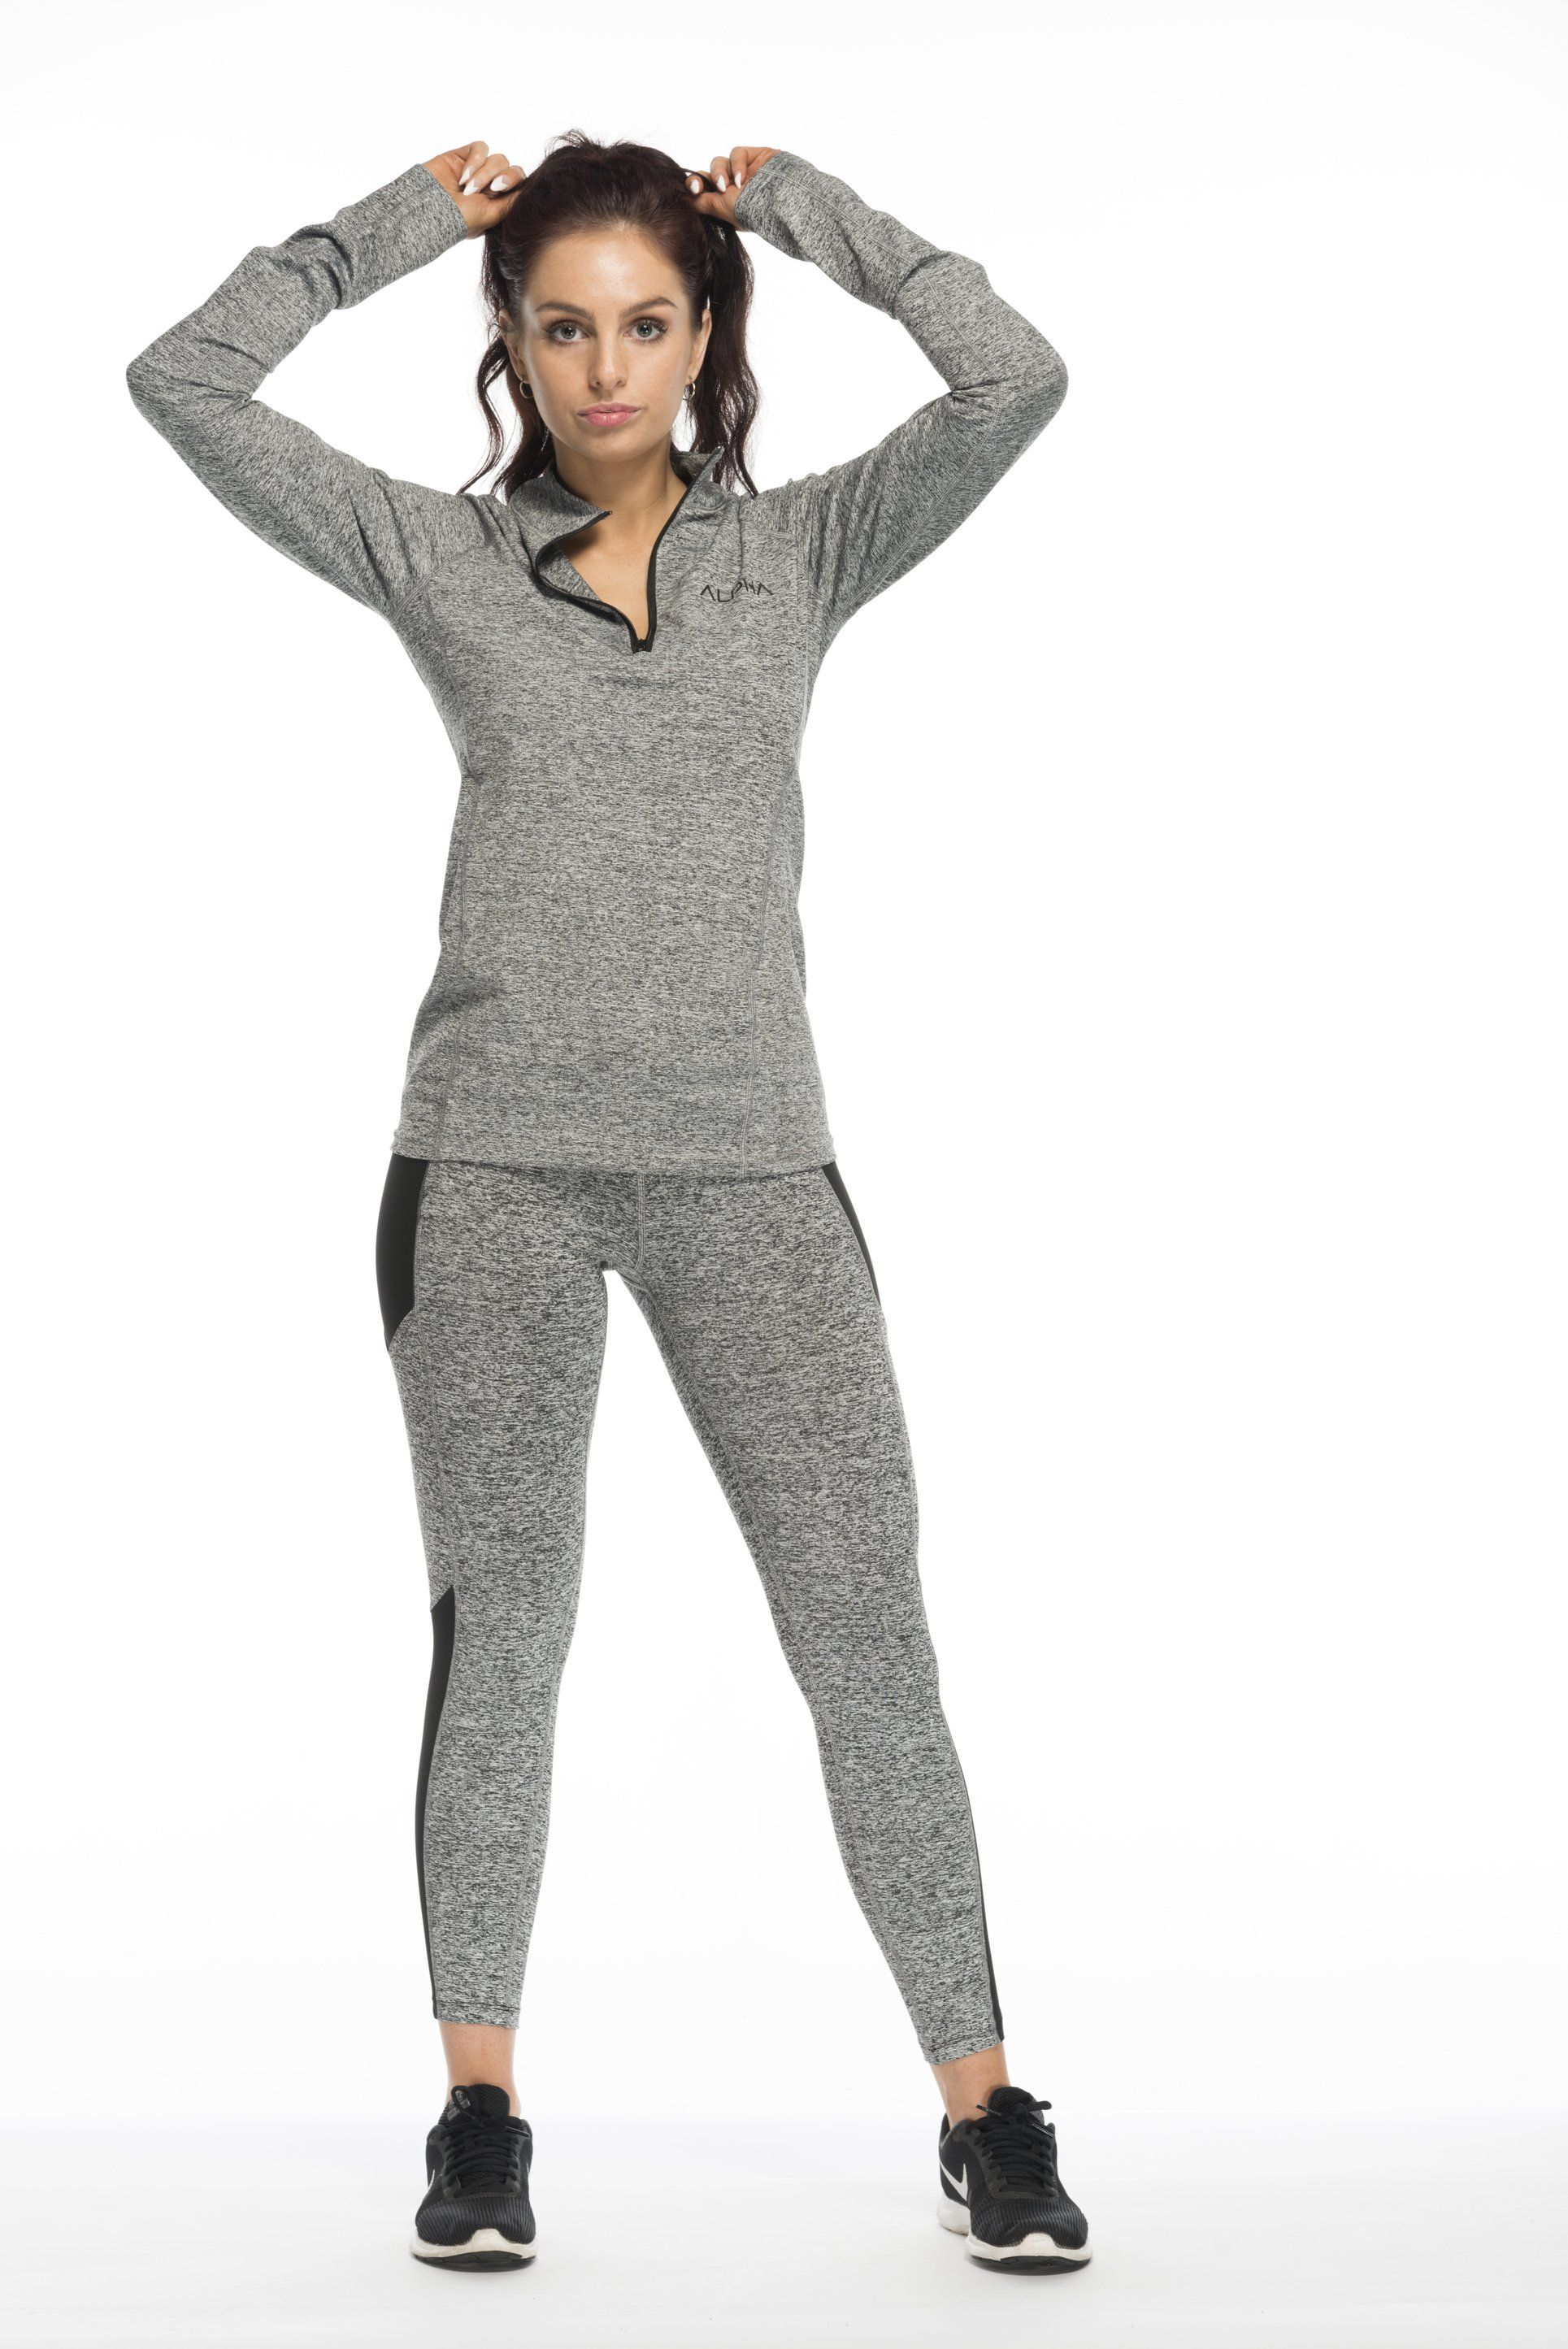 9b9ce8345 This all grey gym outfit is ideal for women who want to be stylish and  comfortable while they train. Team women s gym leggings with a workout  jumper for ...